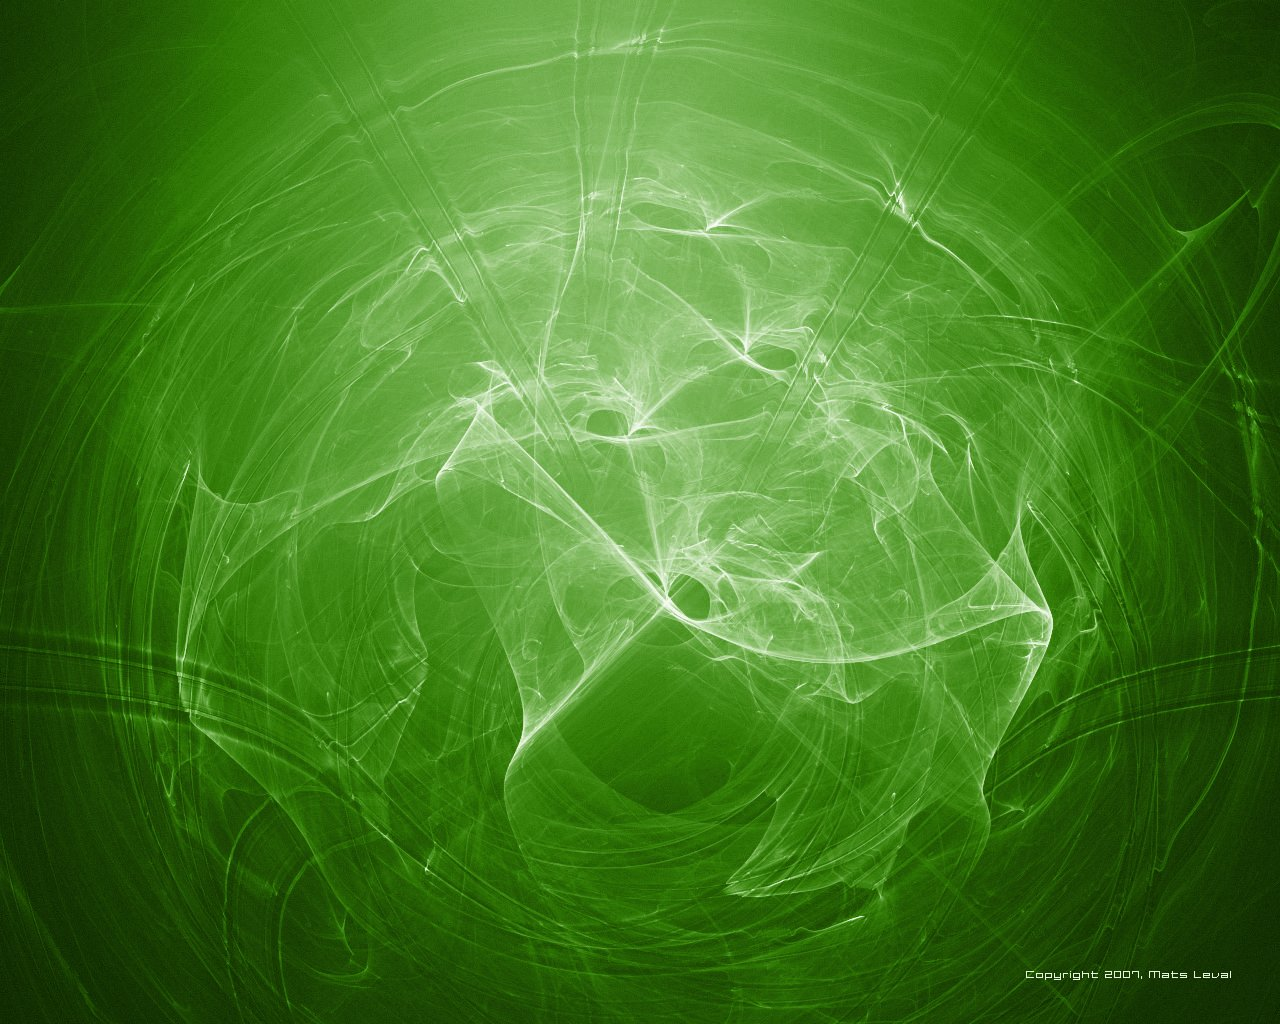 Green Swirl Wallpaper Wallpapersafari